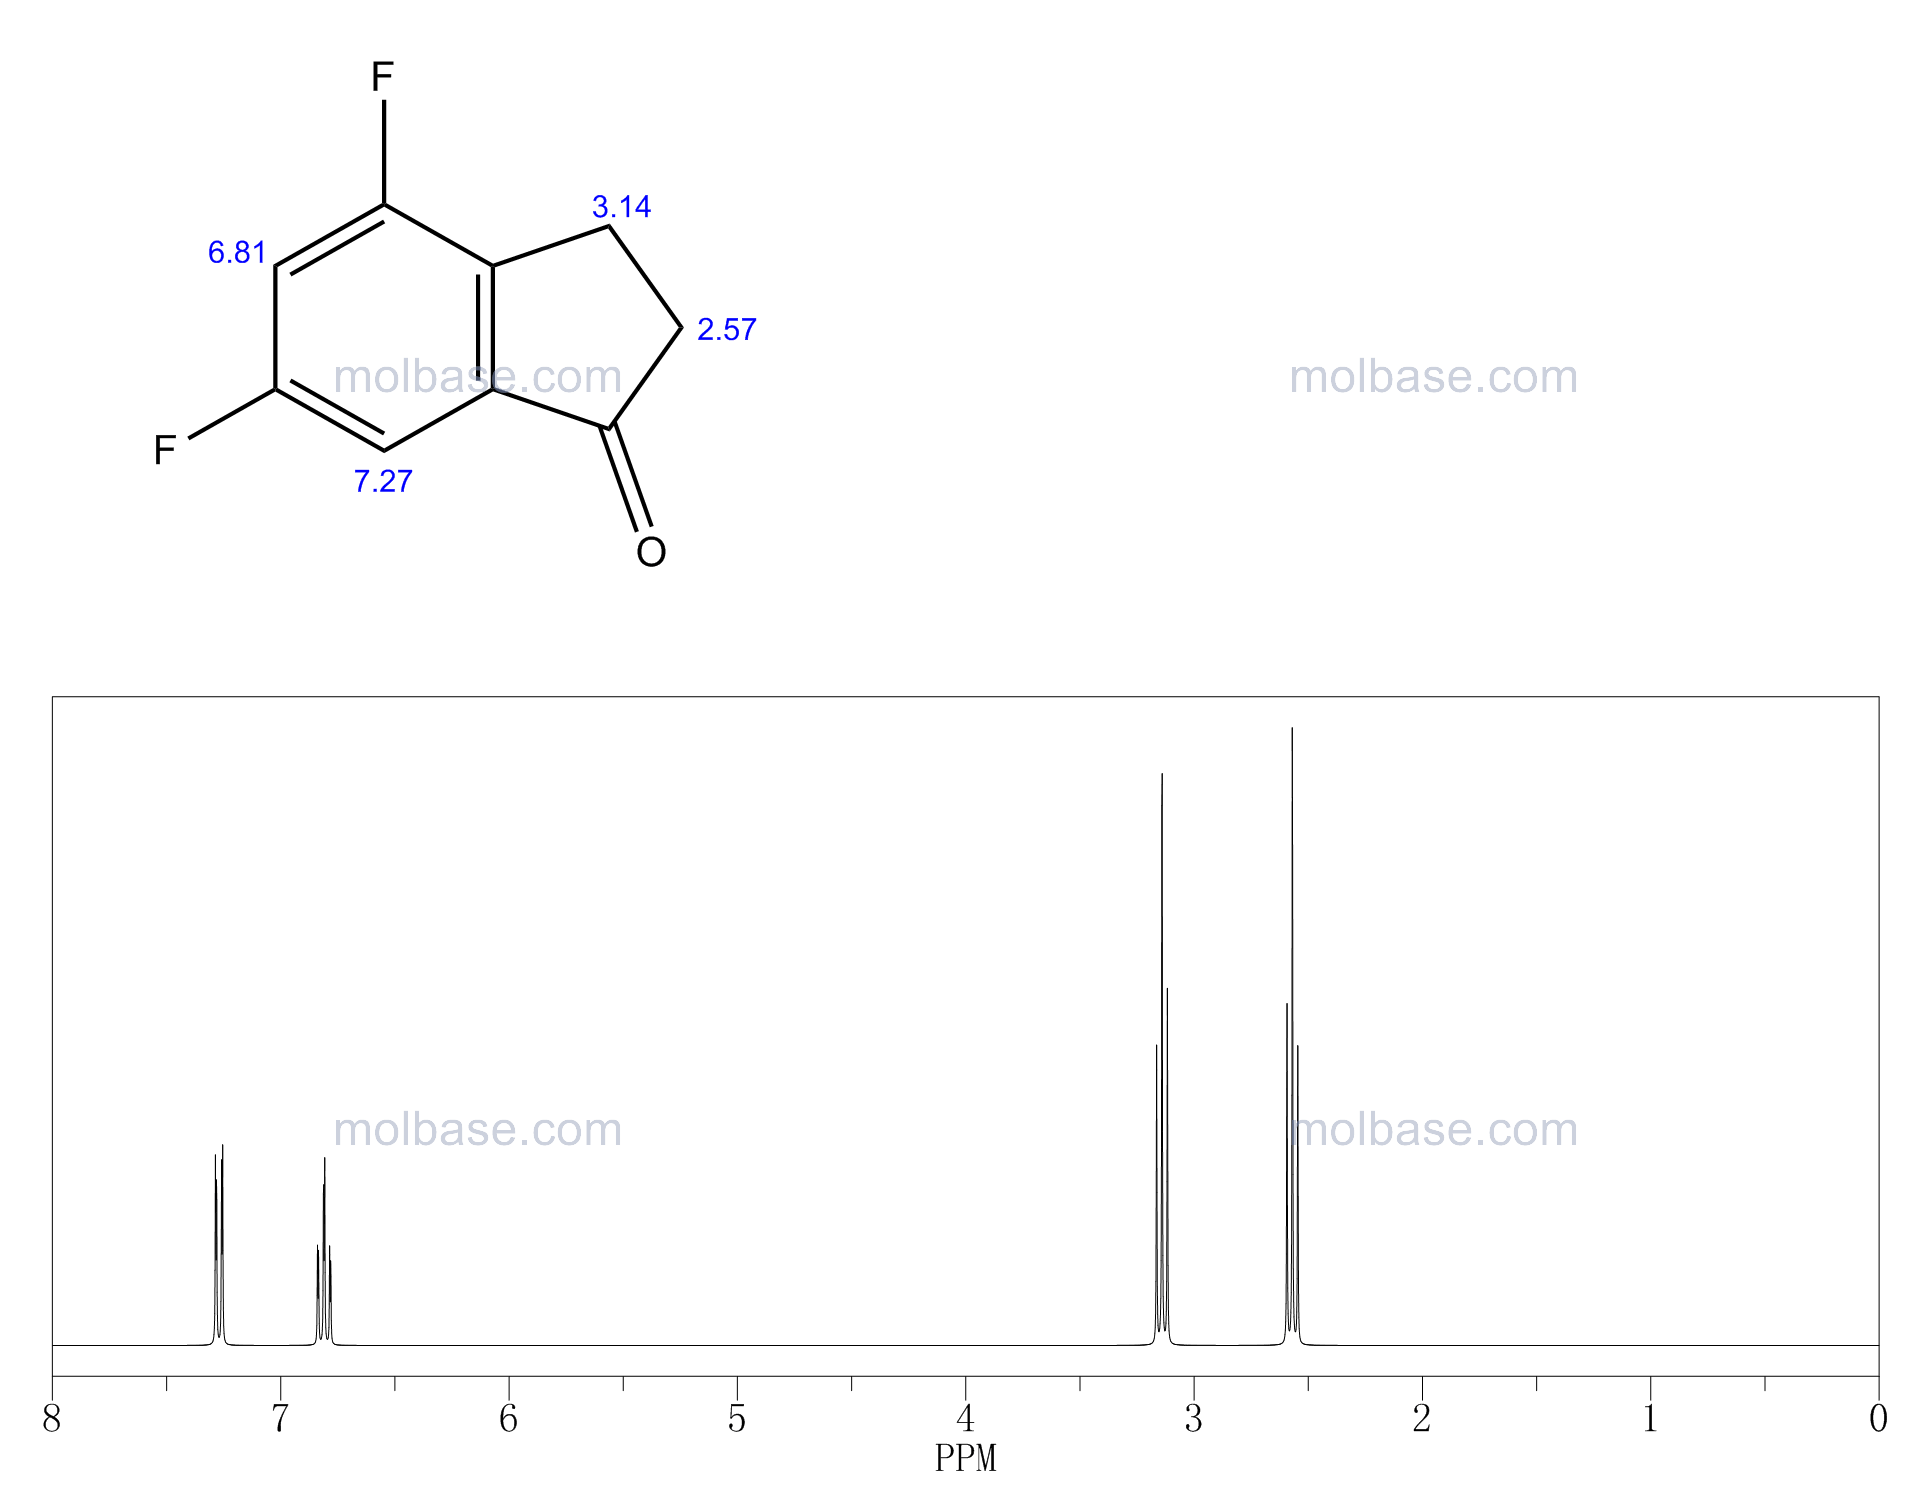 4,6-difluoro-2,3-dihydroinden-1-one NMR spectra analysis, Chemical CAS NO. 162548-73-4 NMR spectral analysis, 4,6-difluoro-2,3-dihydroinden-1-one C-NMR spectrum